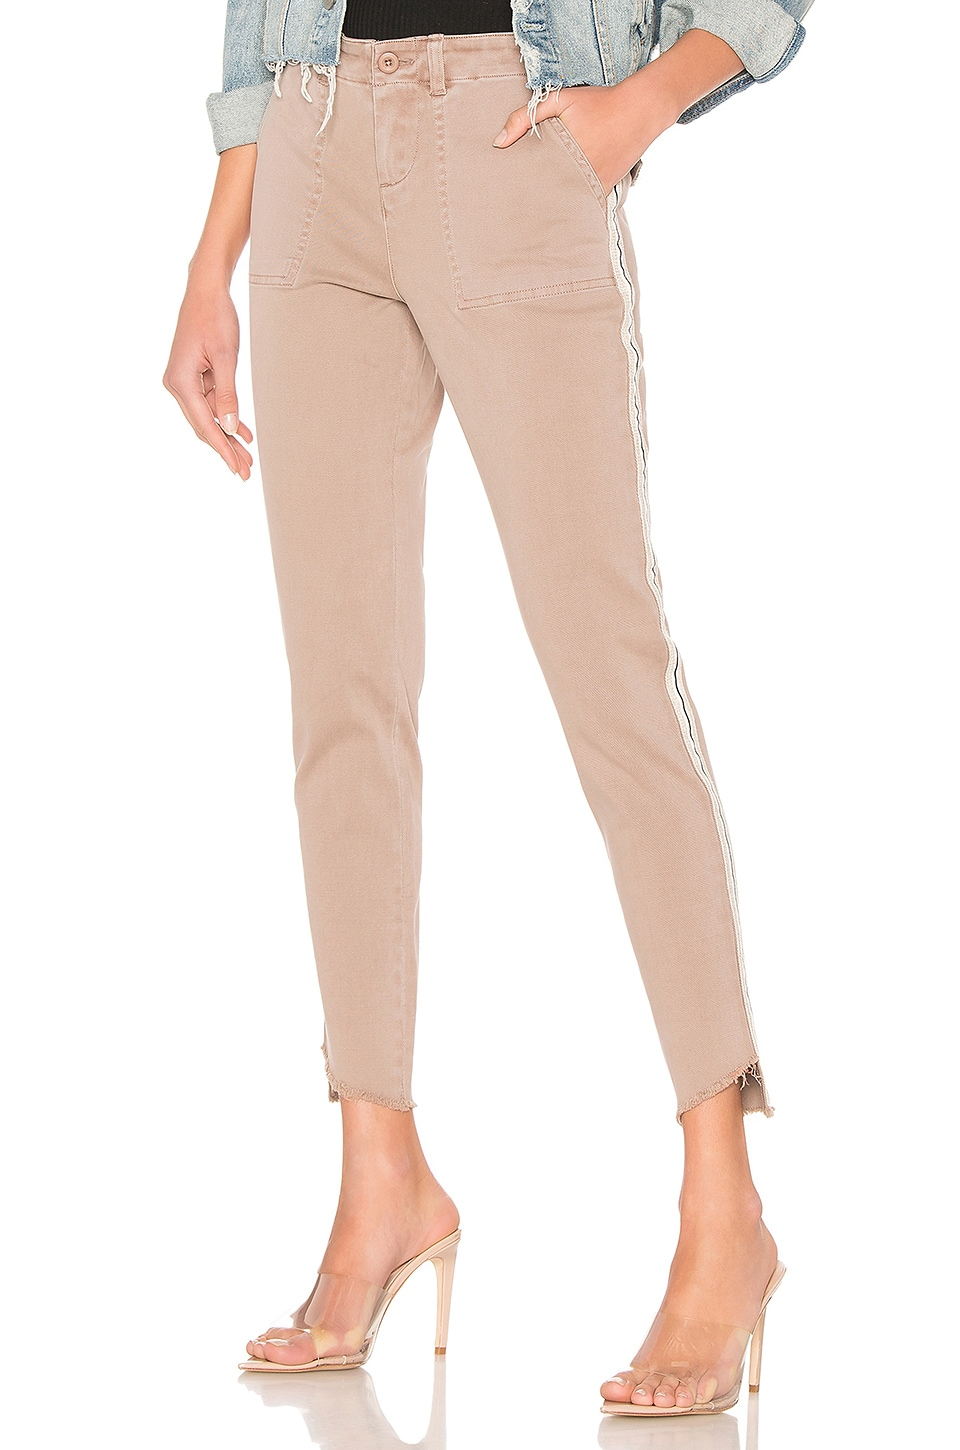 MONROW Cut Off Military Pant in Camel